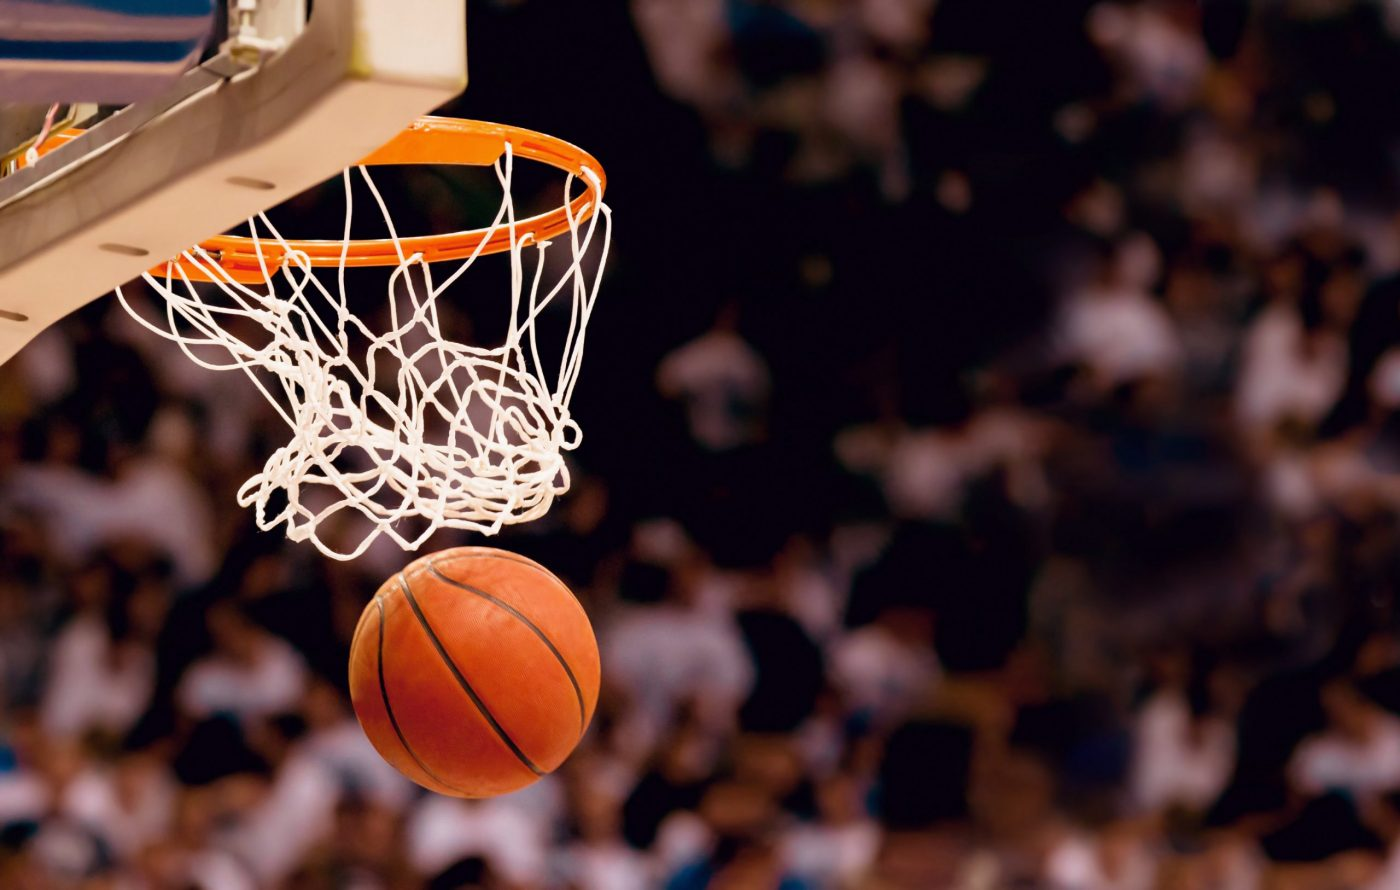 How the World Learns: The Power of Video for NBA Stars and B2B Content Marketing